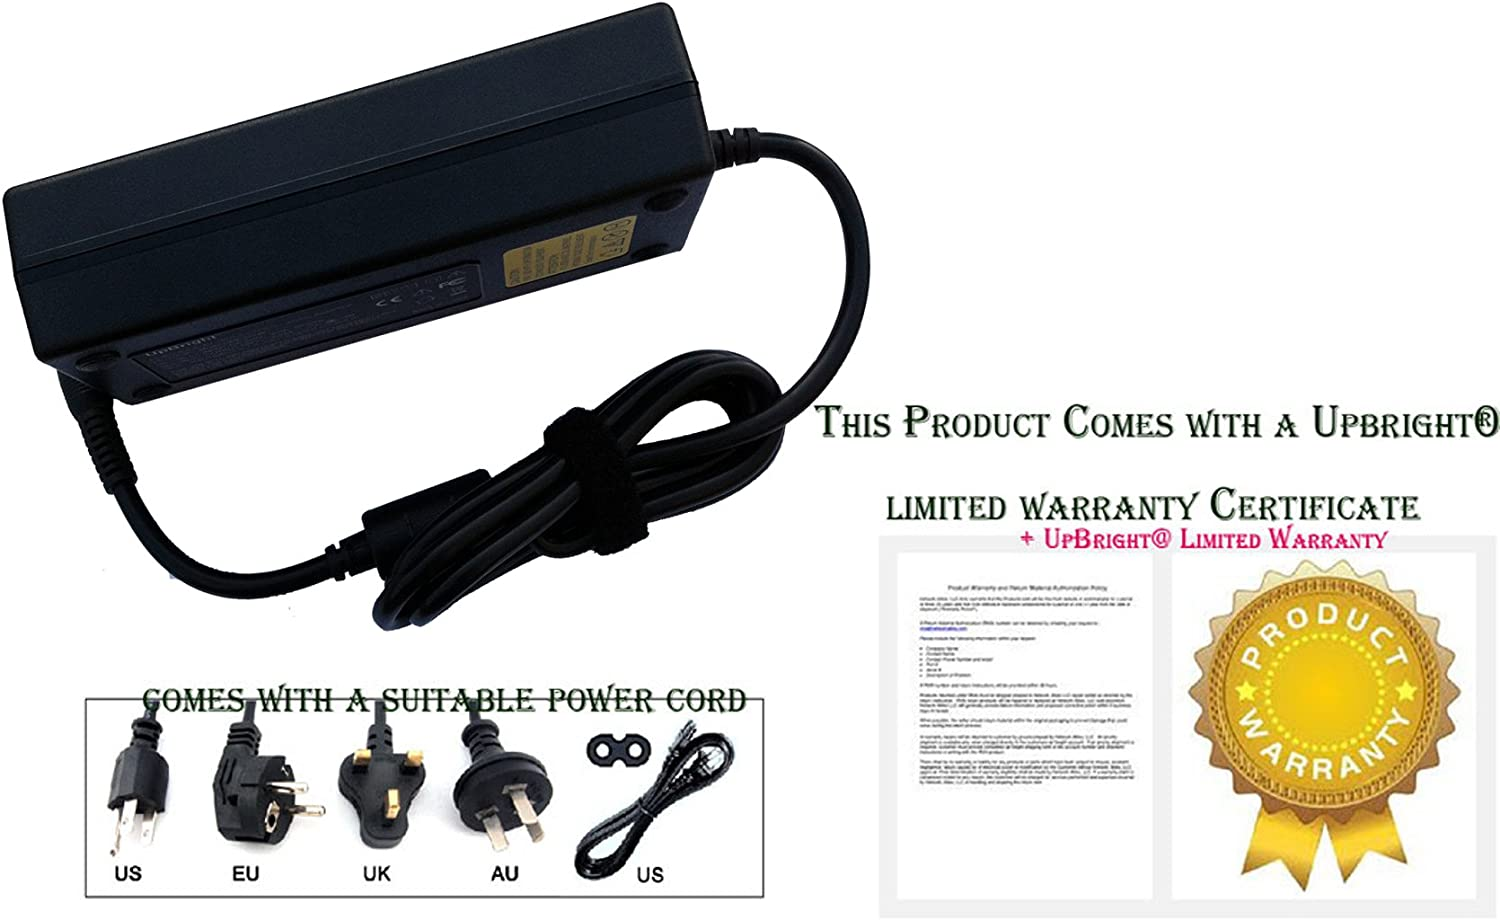 w//Barrel Tip UpBright New Global 24V AC//DC Adapter for Zebra FSP100-RDB FSP100RDB FSP P//N 808101-001 9NA1000100 808101-005 808101005 Printer 24VDC 4.17A 100W-120W Power Supply Cord Cable Charger